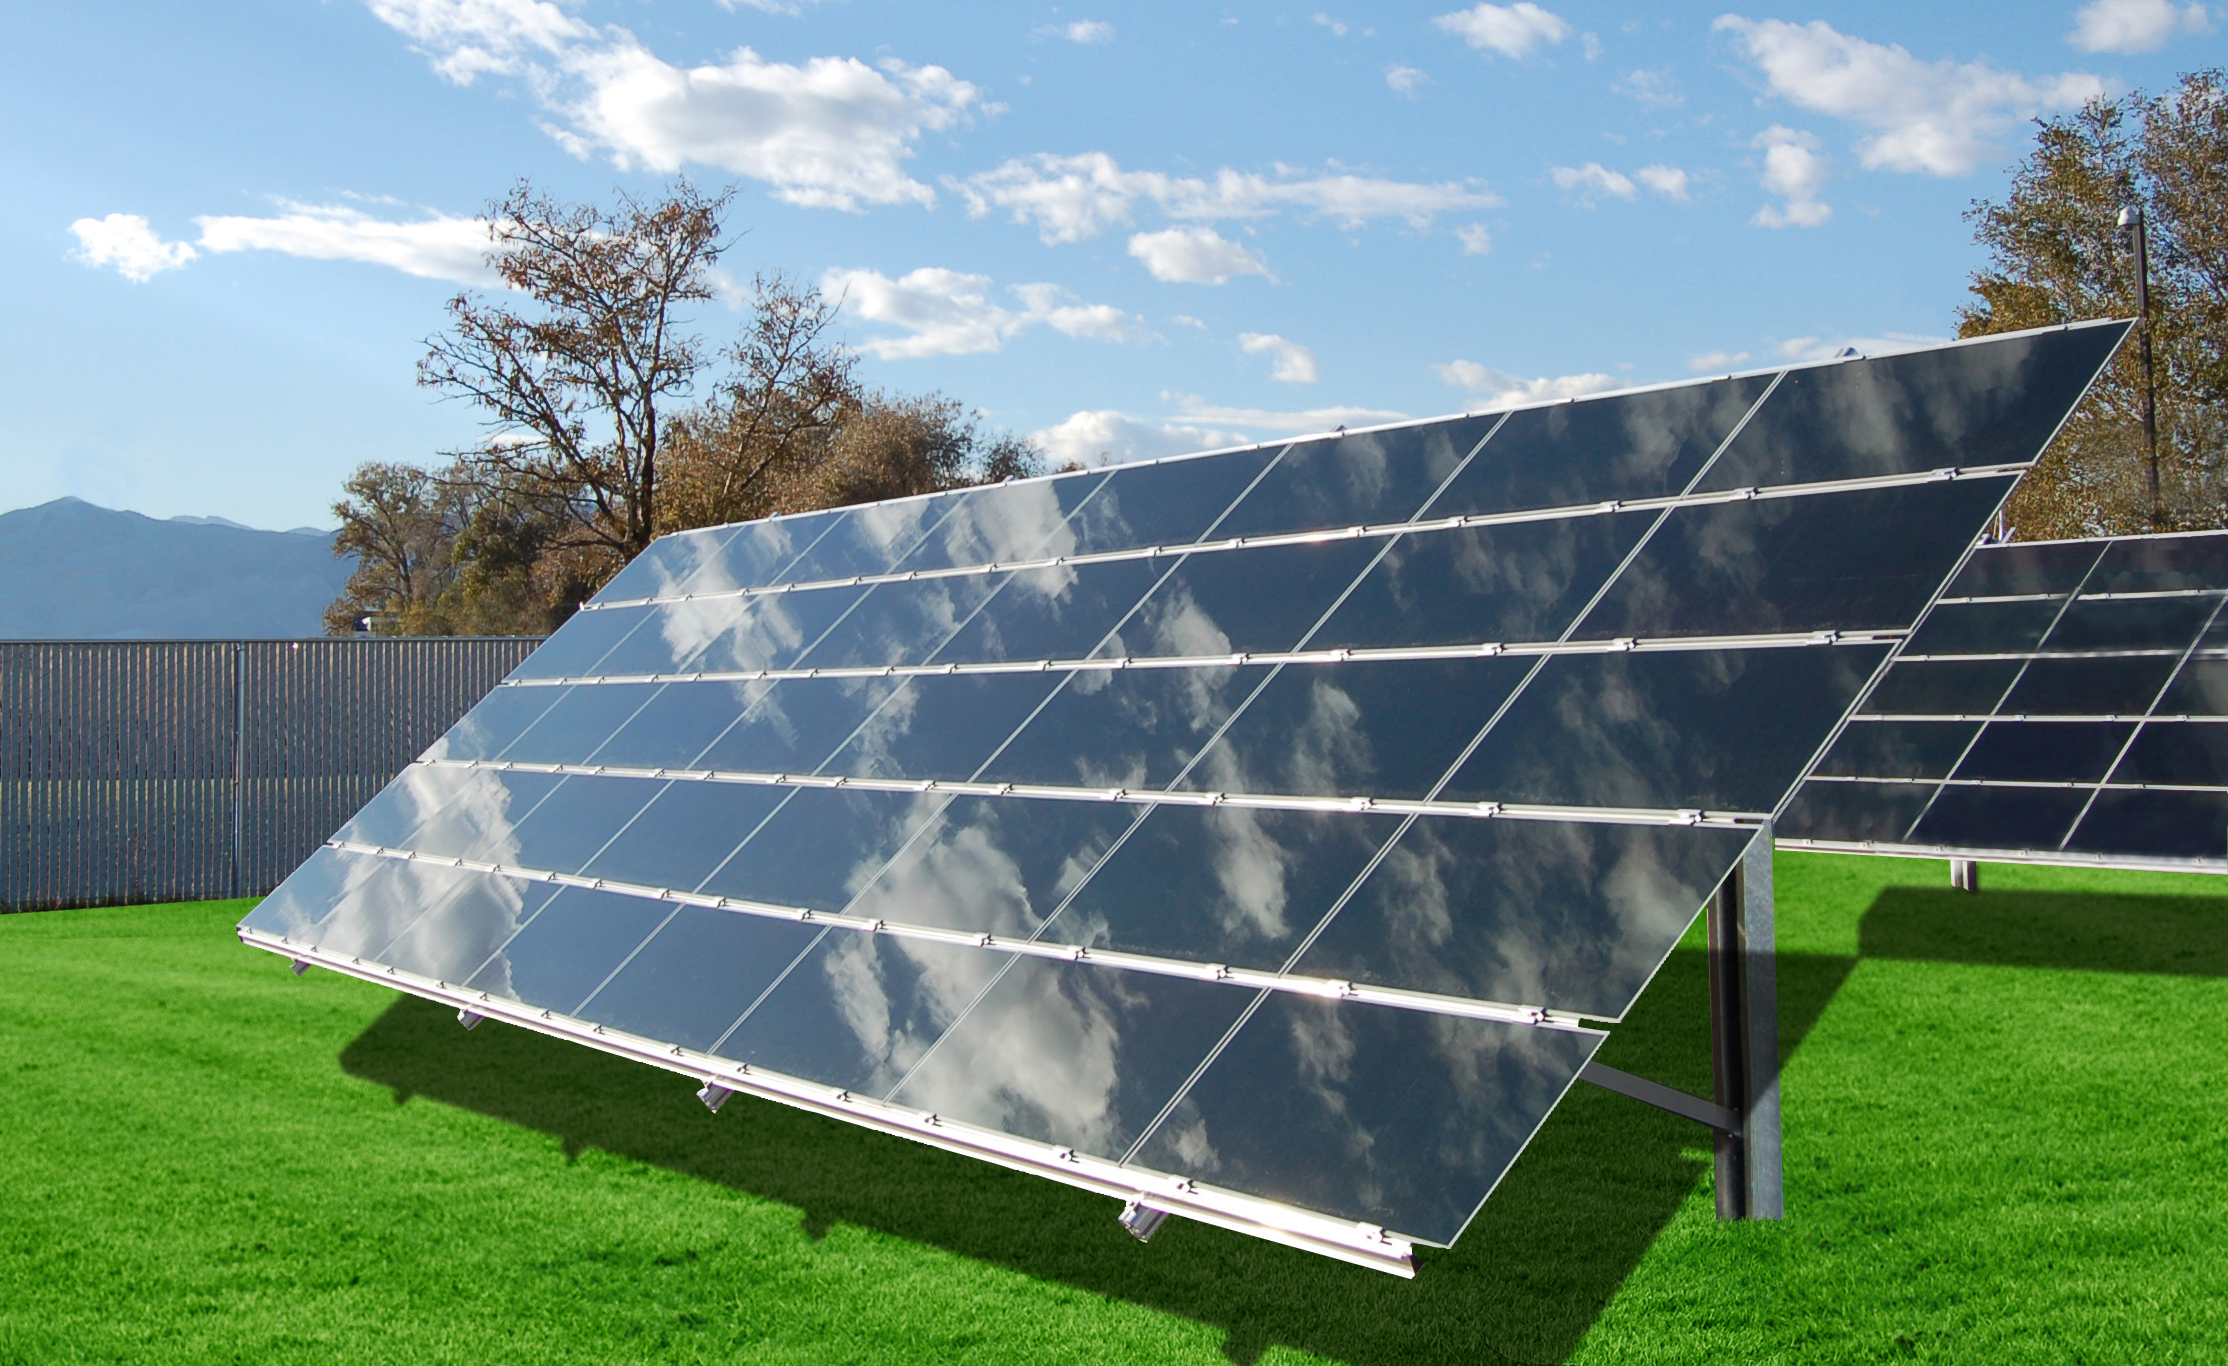 GE's thin-film solar technology has roots at the National Renewable Energy Laboratories and was developed by start-up PrimeStar which GE acquired.